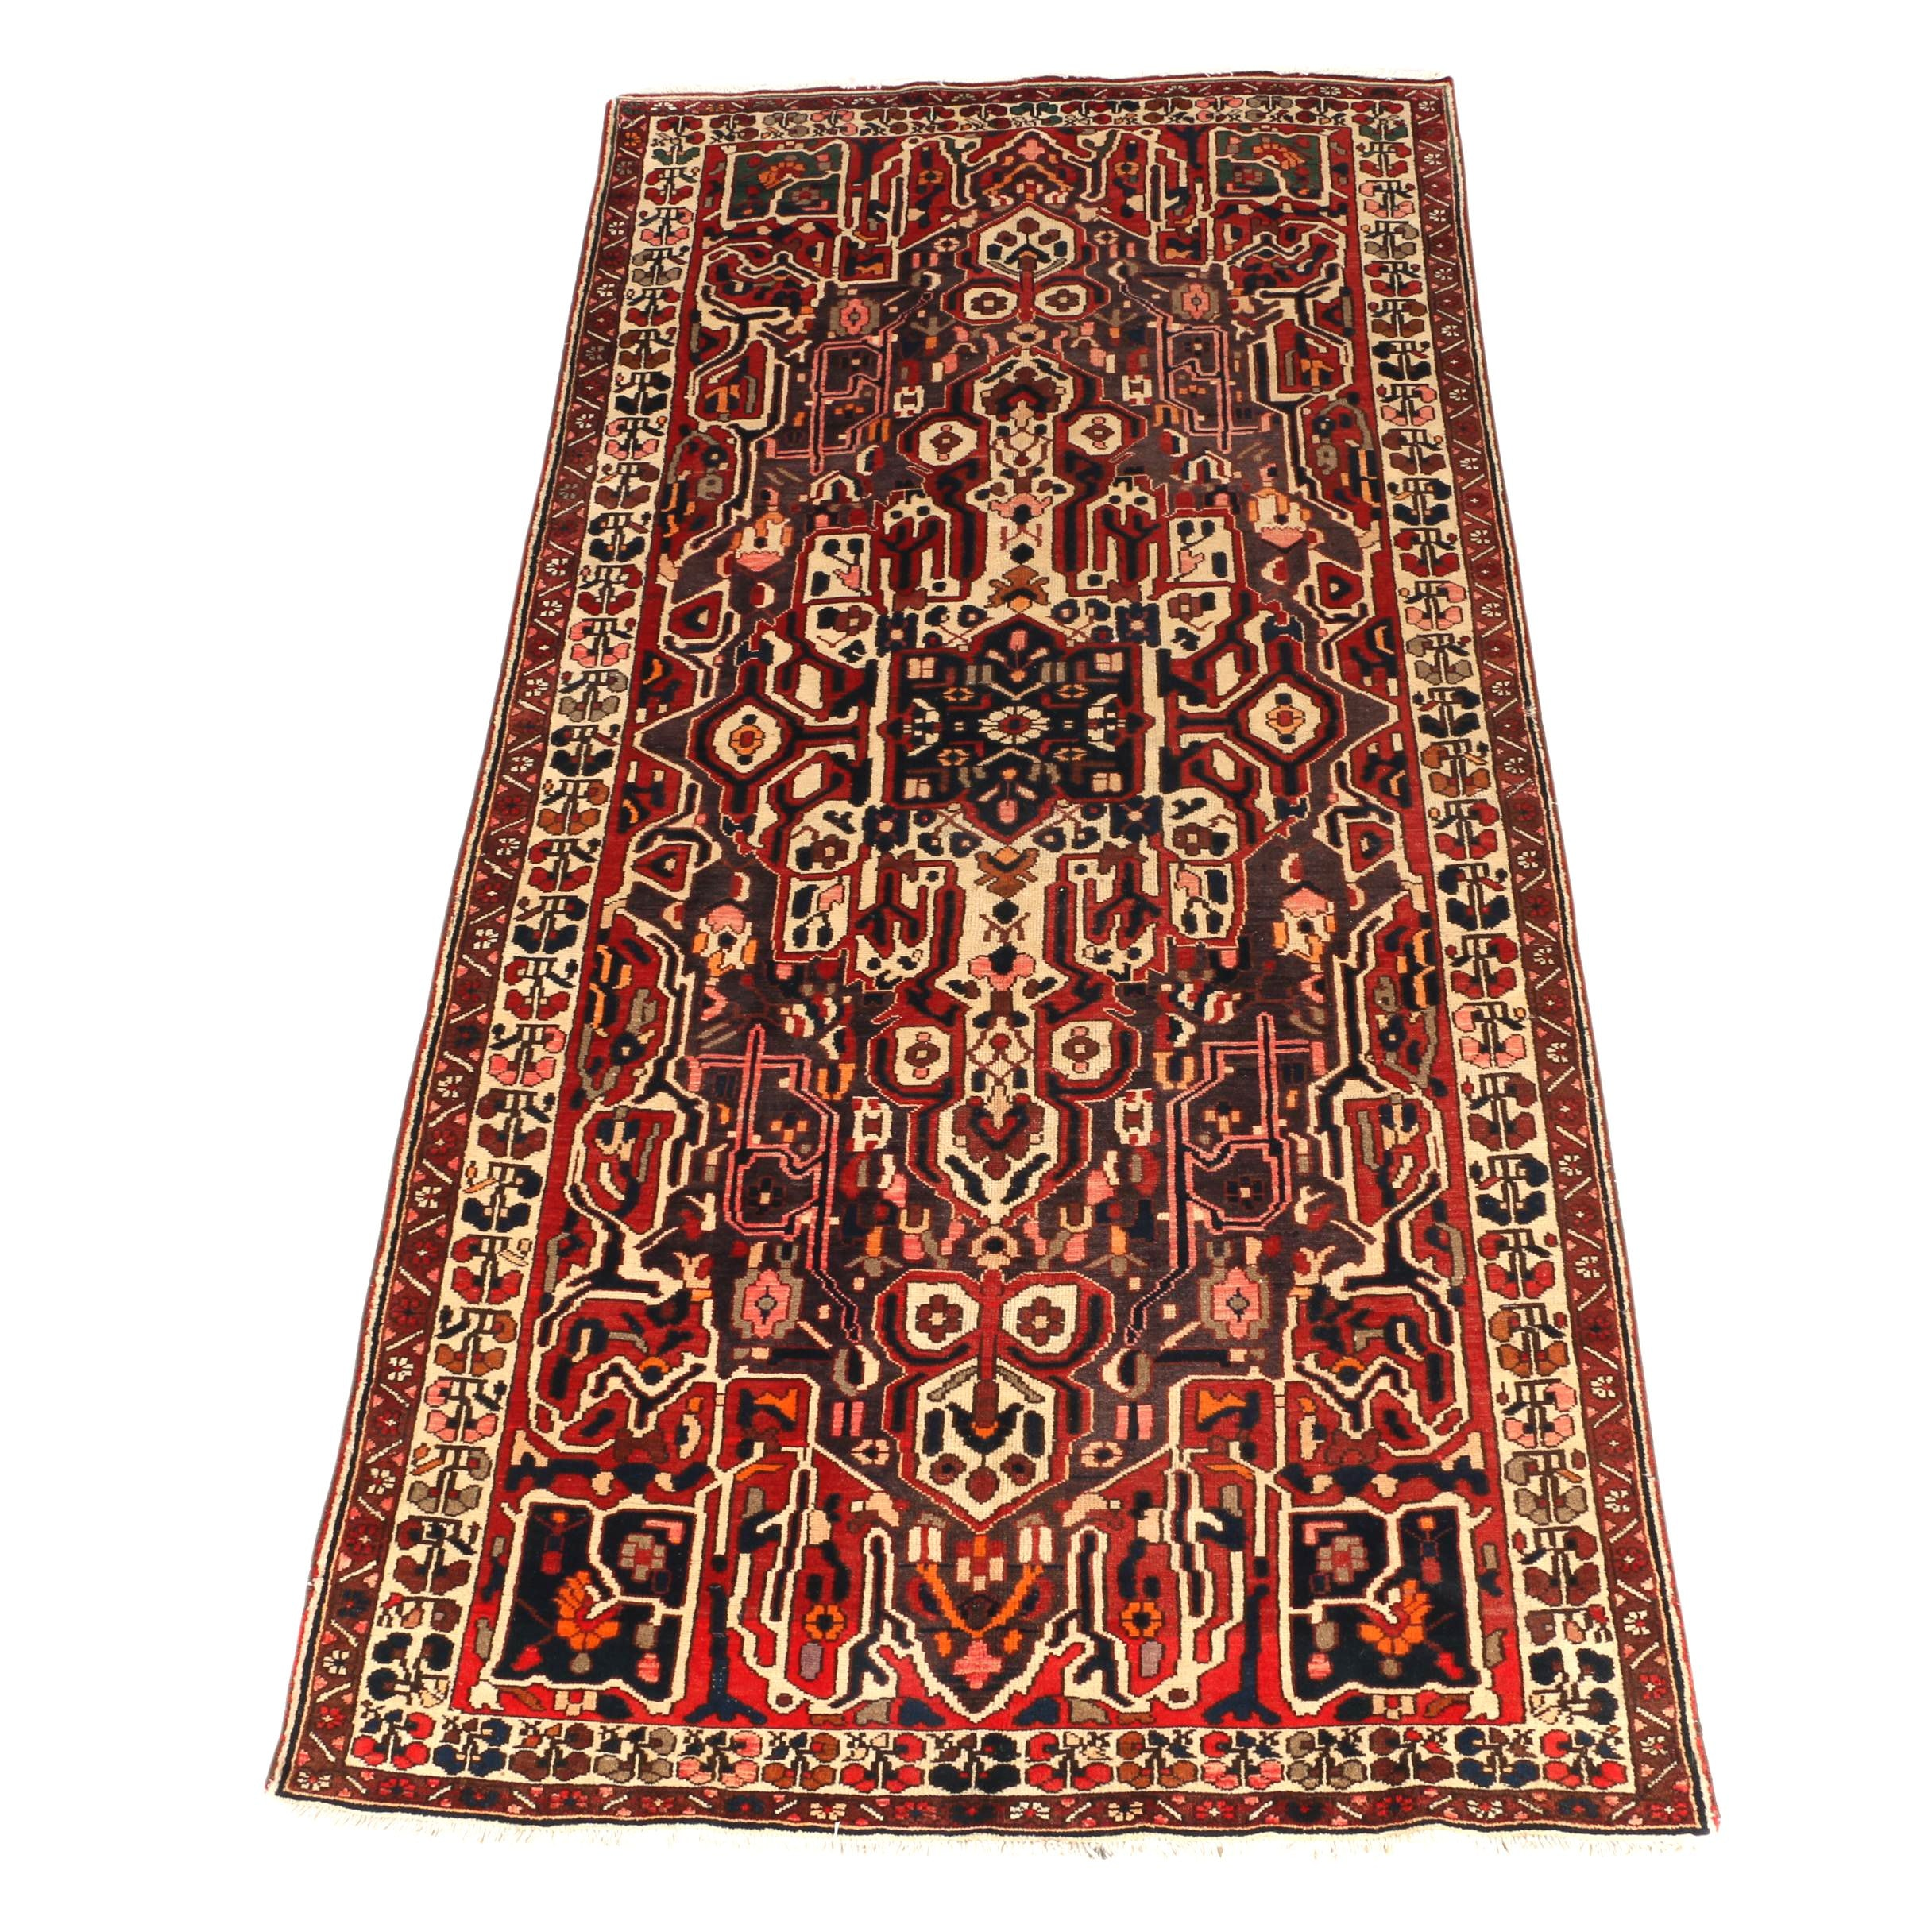 Artistic Hand-Knotted Bakhtiari Area Rug